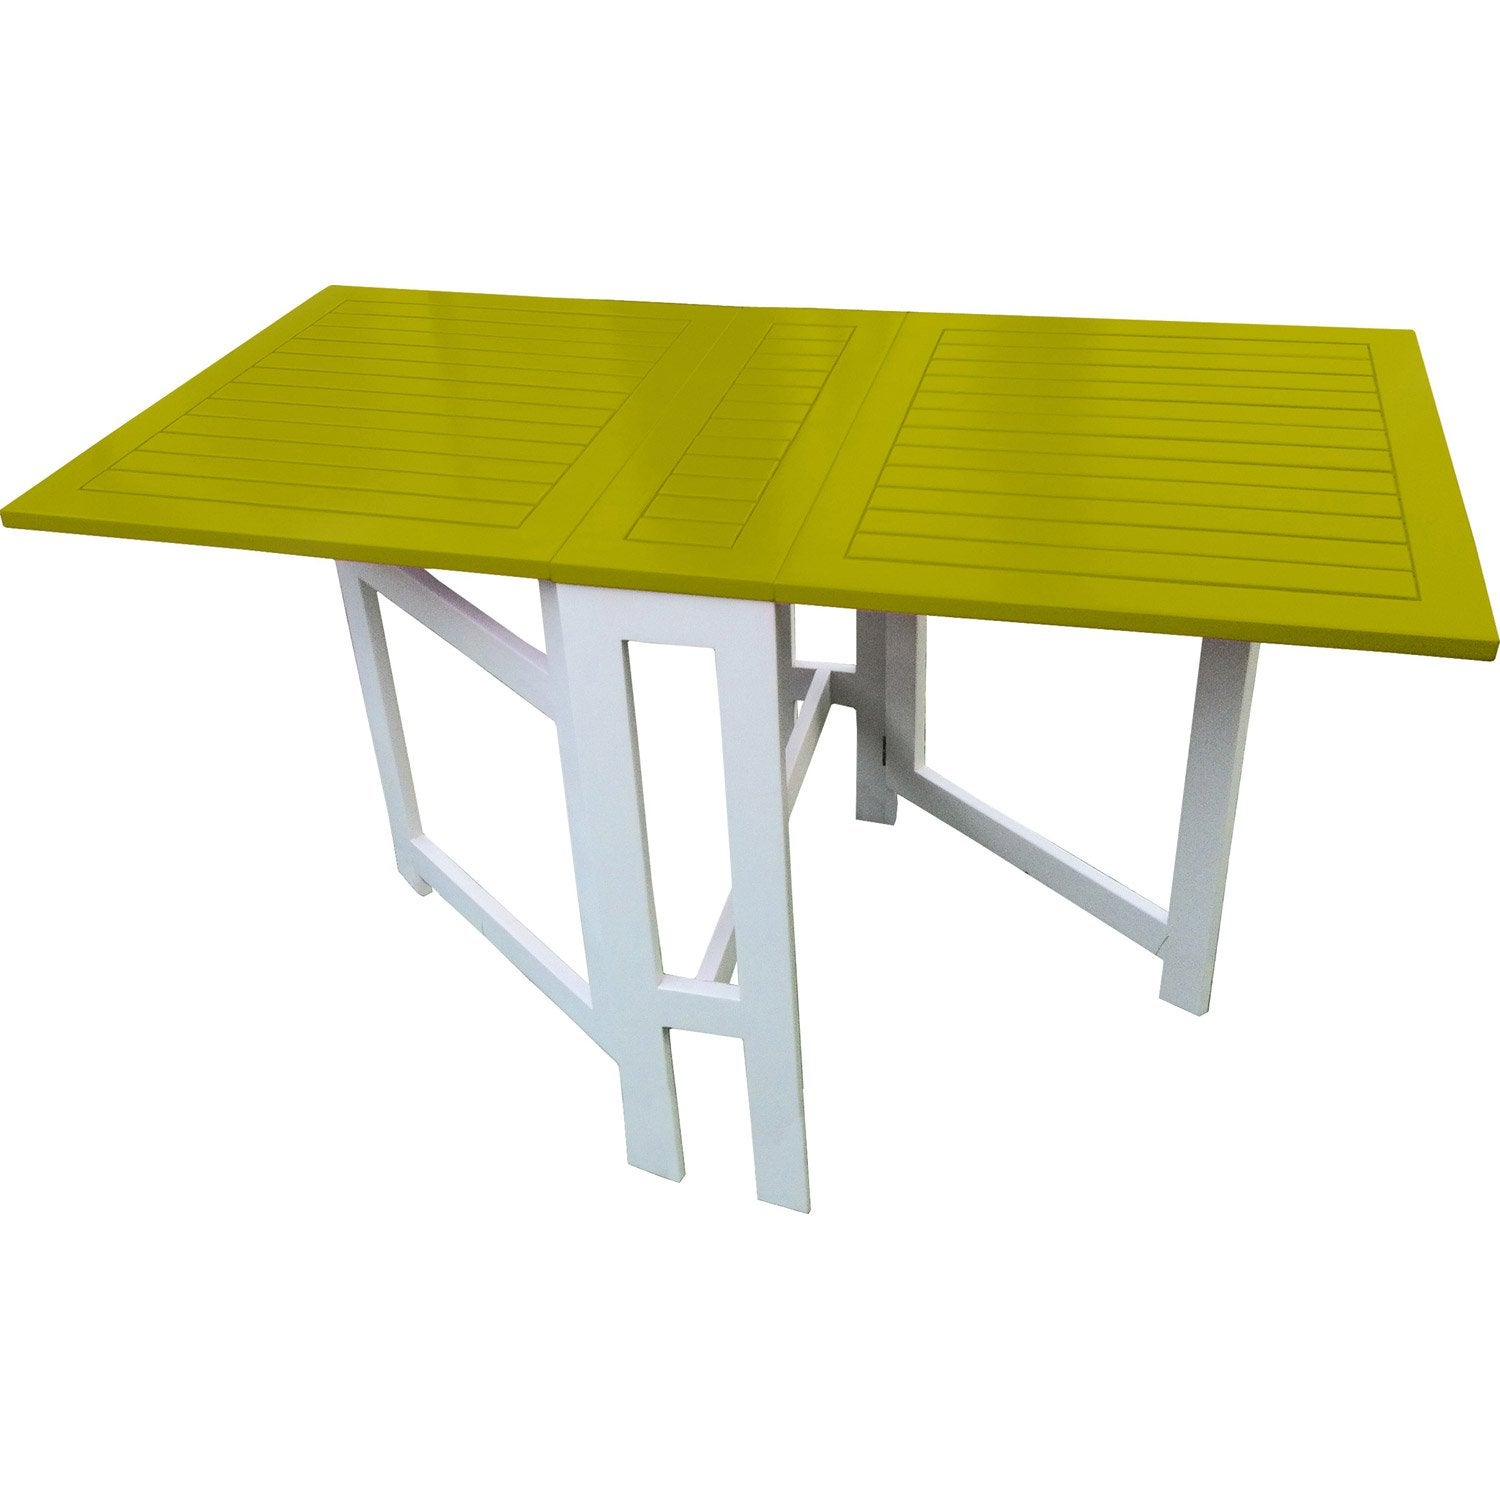 Table de jardin city green rectangulaire vert 6 personnes for Table de nuit leroy merlin